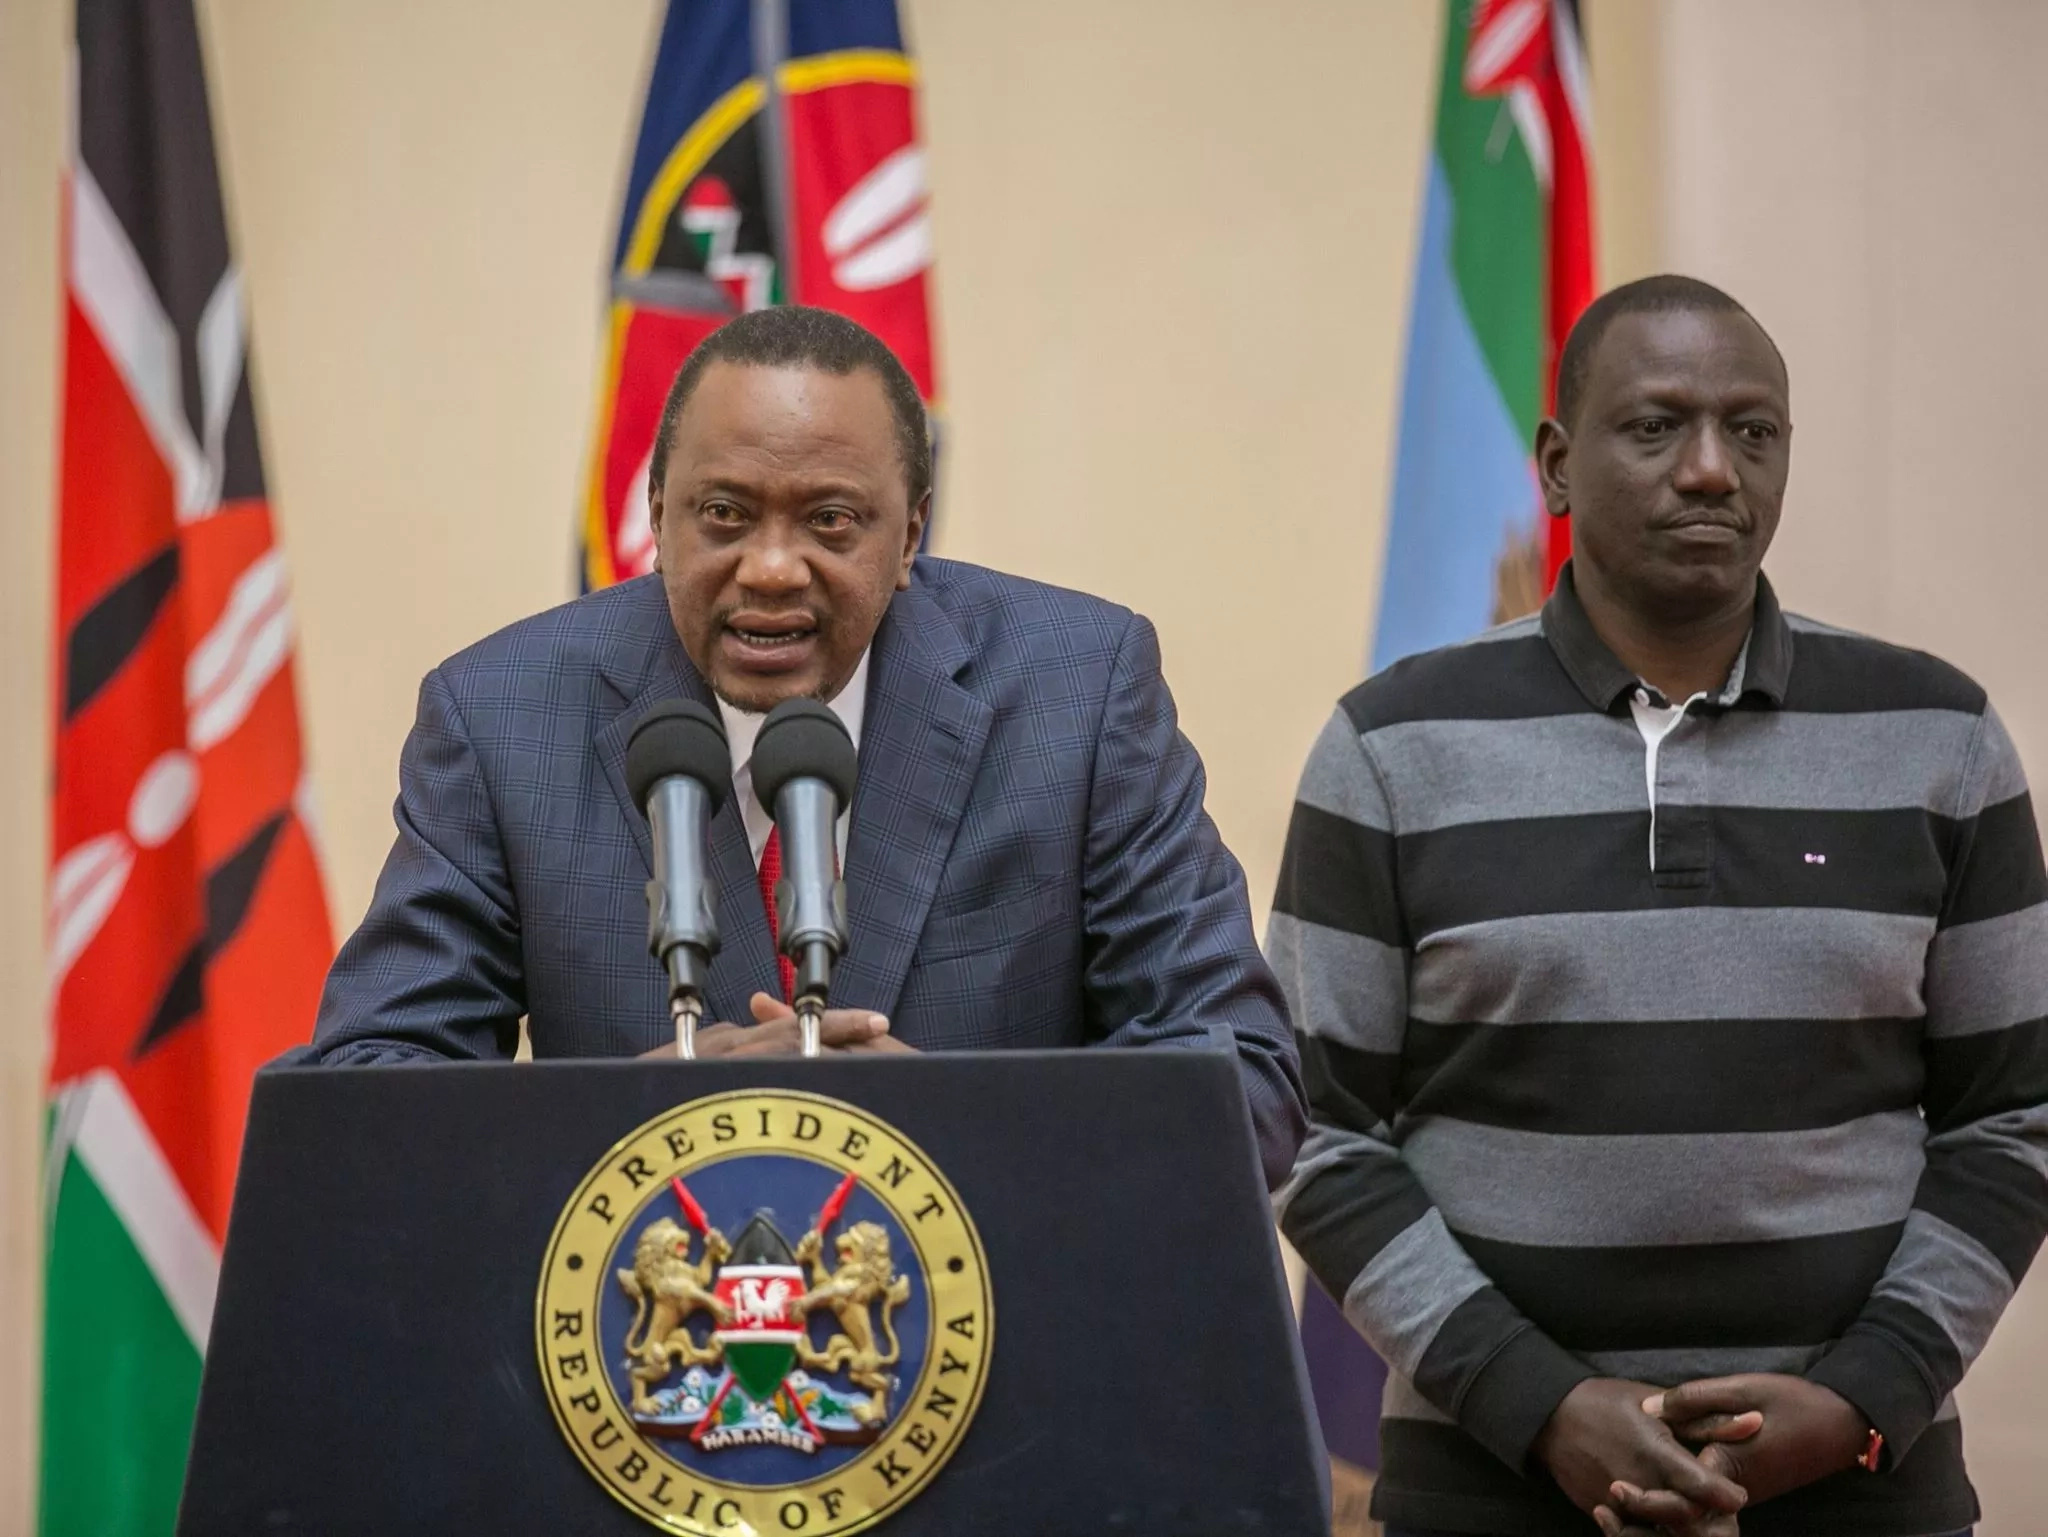 Kenyan court overturns president's win and calls for new election